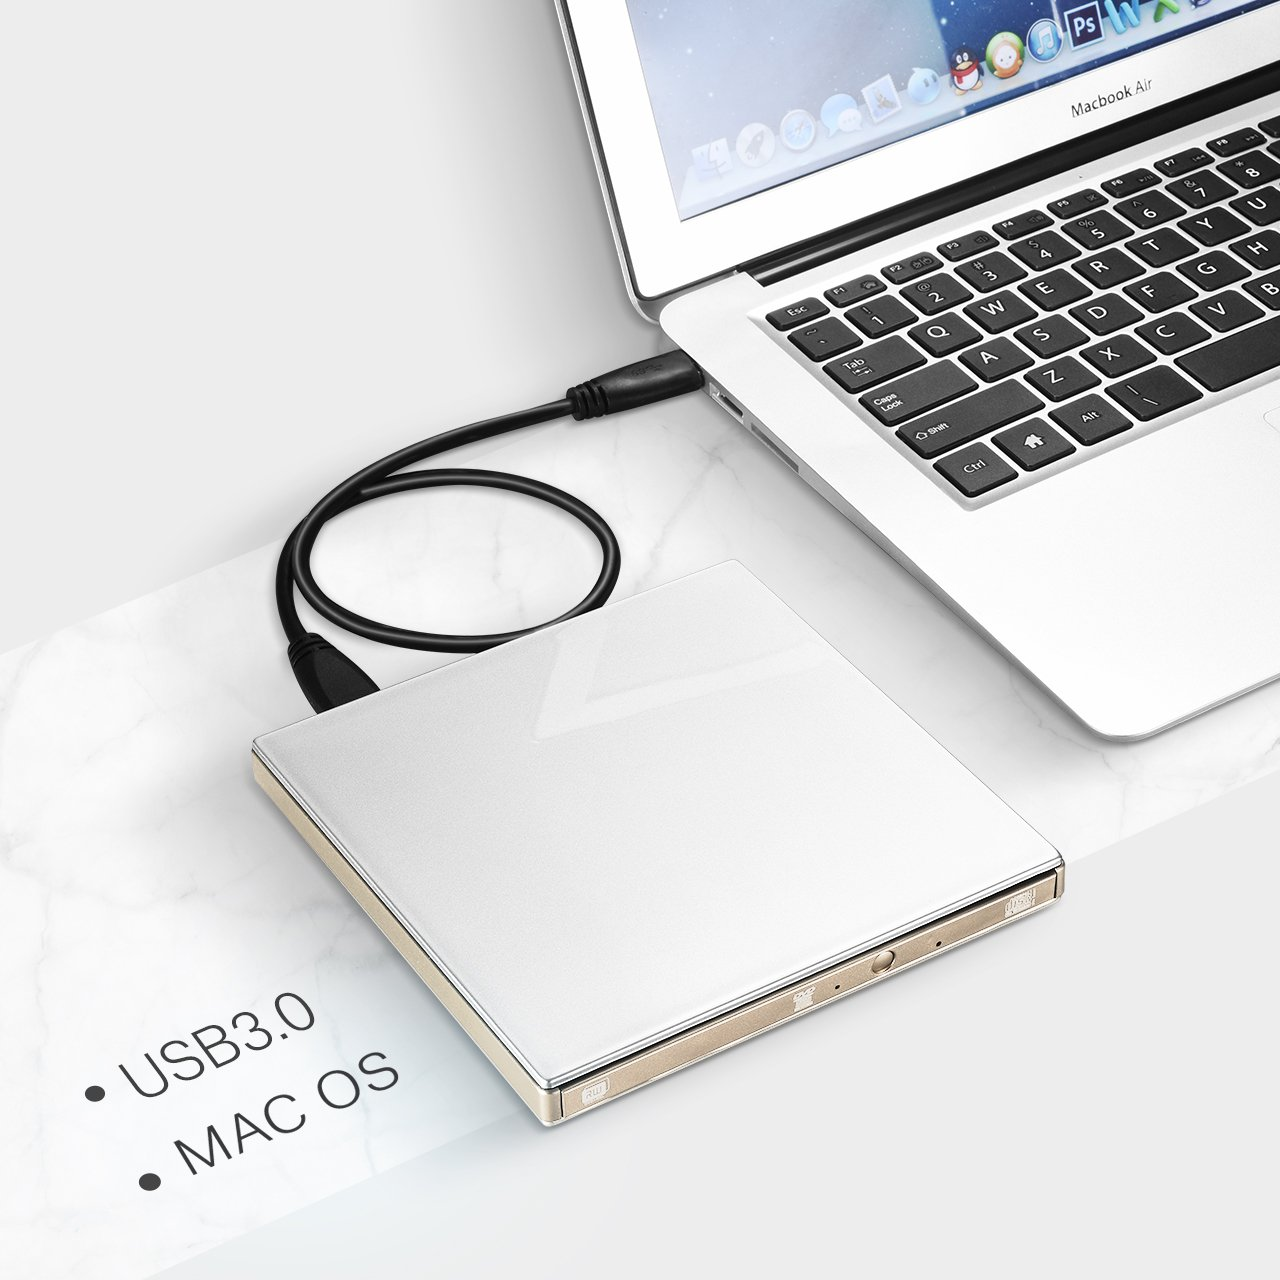 VicTsing External USB 3.0 CD DVD Drive, Ultra Slim Optical DVD Drive CD-RW Burner Write Drive for Apple MacBook Pro Air iMac and Other Non-apple Laptops Desktops Silvery by VicTsing (Image #6)